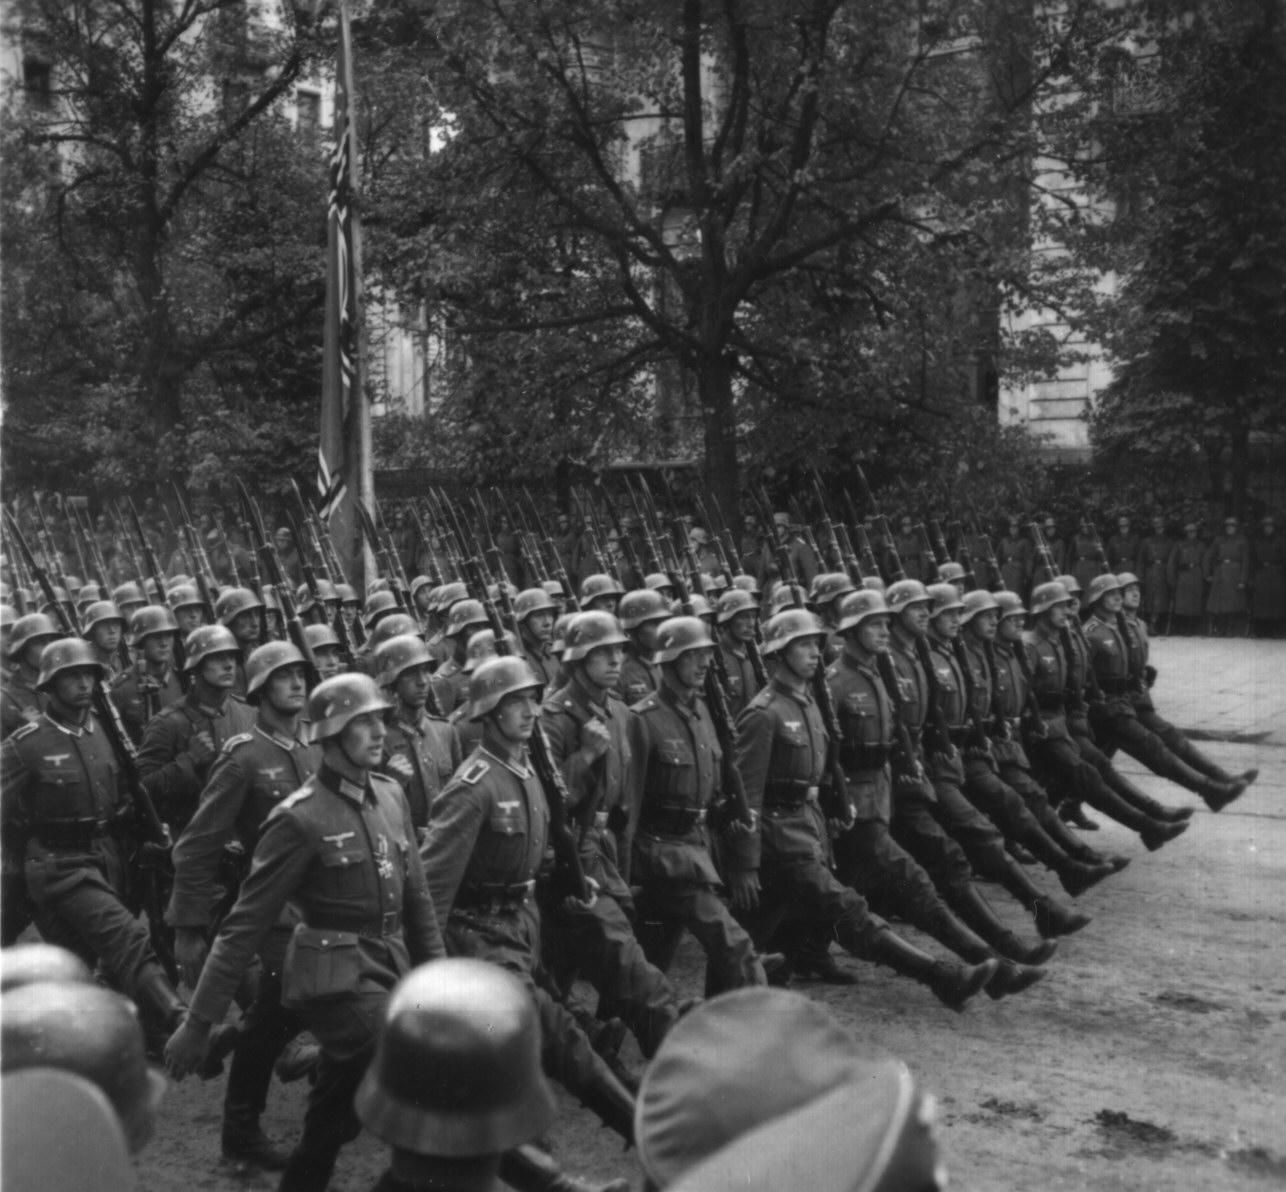 Nazi Troops Marching Through Warsaw, Poland